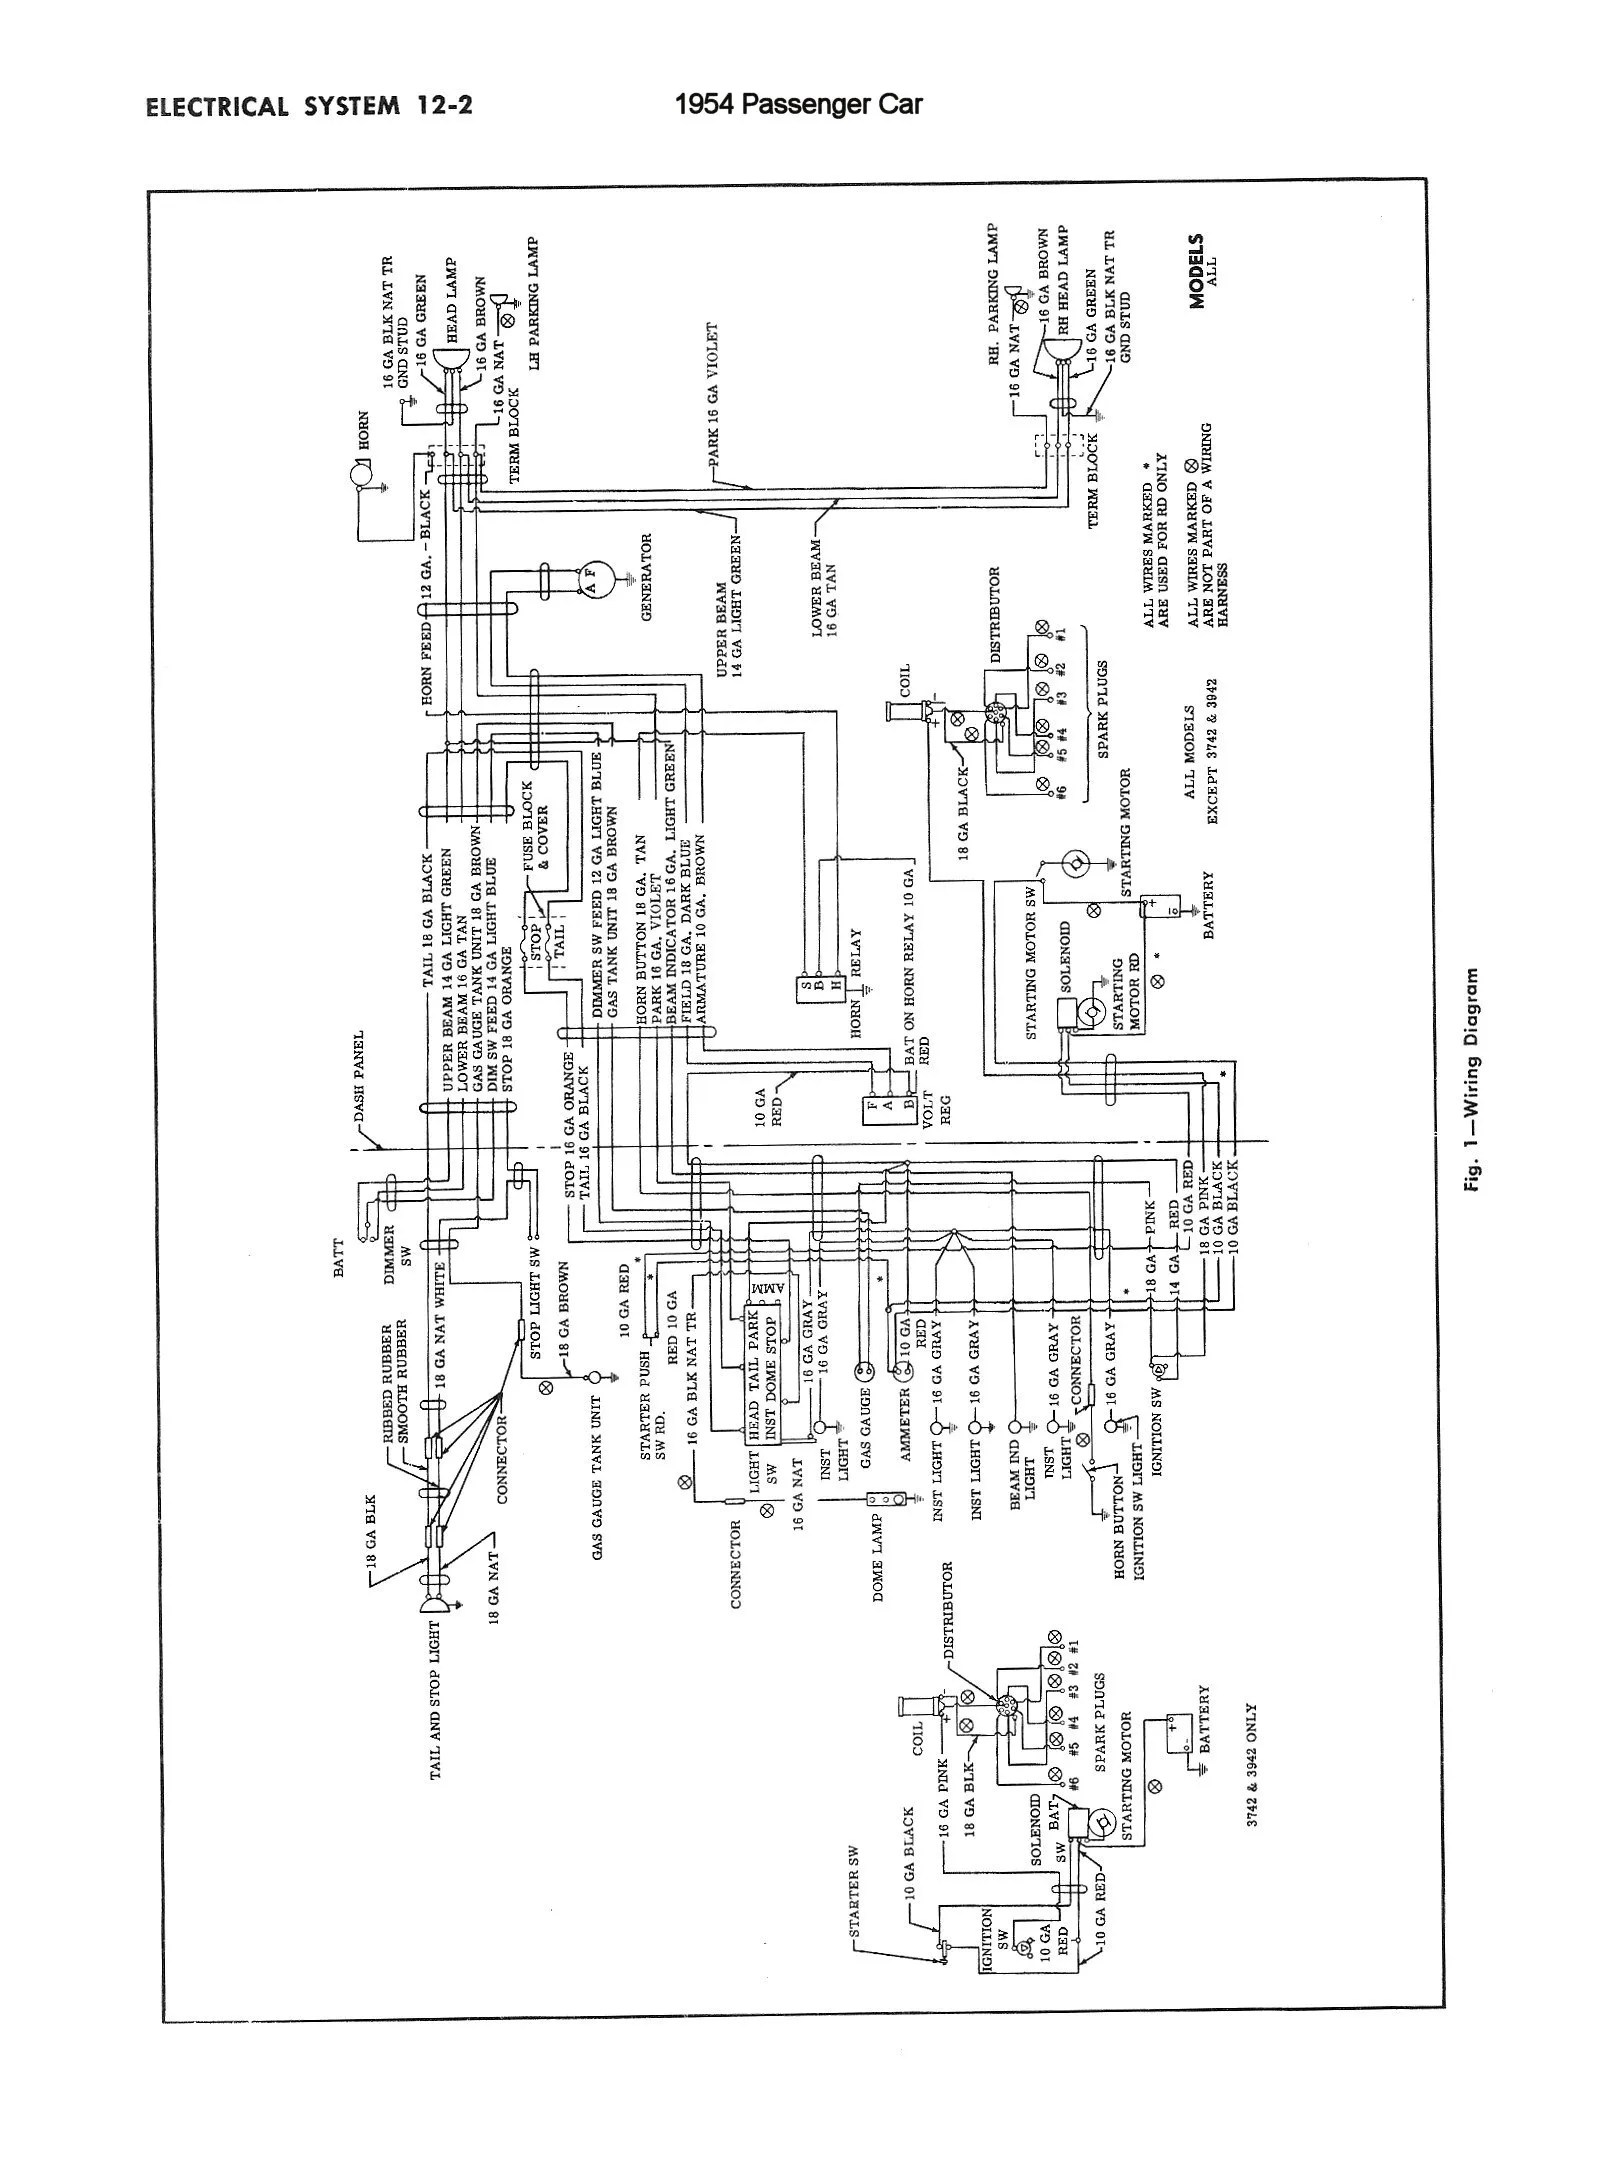 hight resolution of 54 chevy truck fuel gauge wiring diagram free picture wiring 1948 chevy truck lighting diagram 54 chevy truck fuel gauge wiring diagram free picture